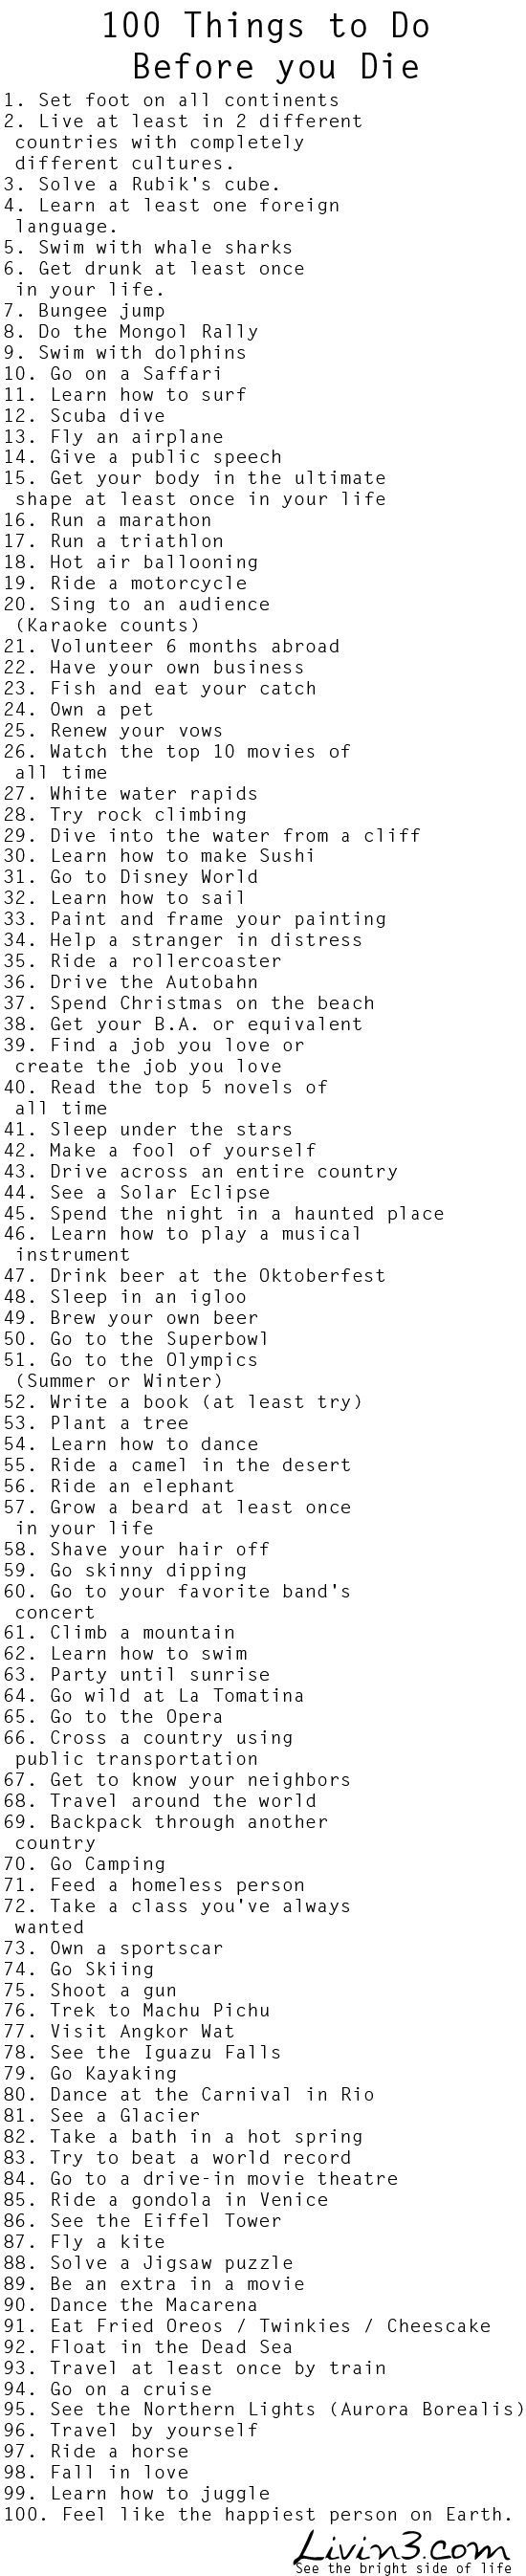 100 Things to do before I die Bucket List Live Your Life Ya – Another Word for to Do List